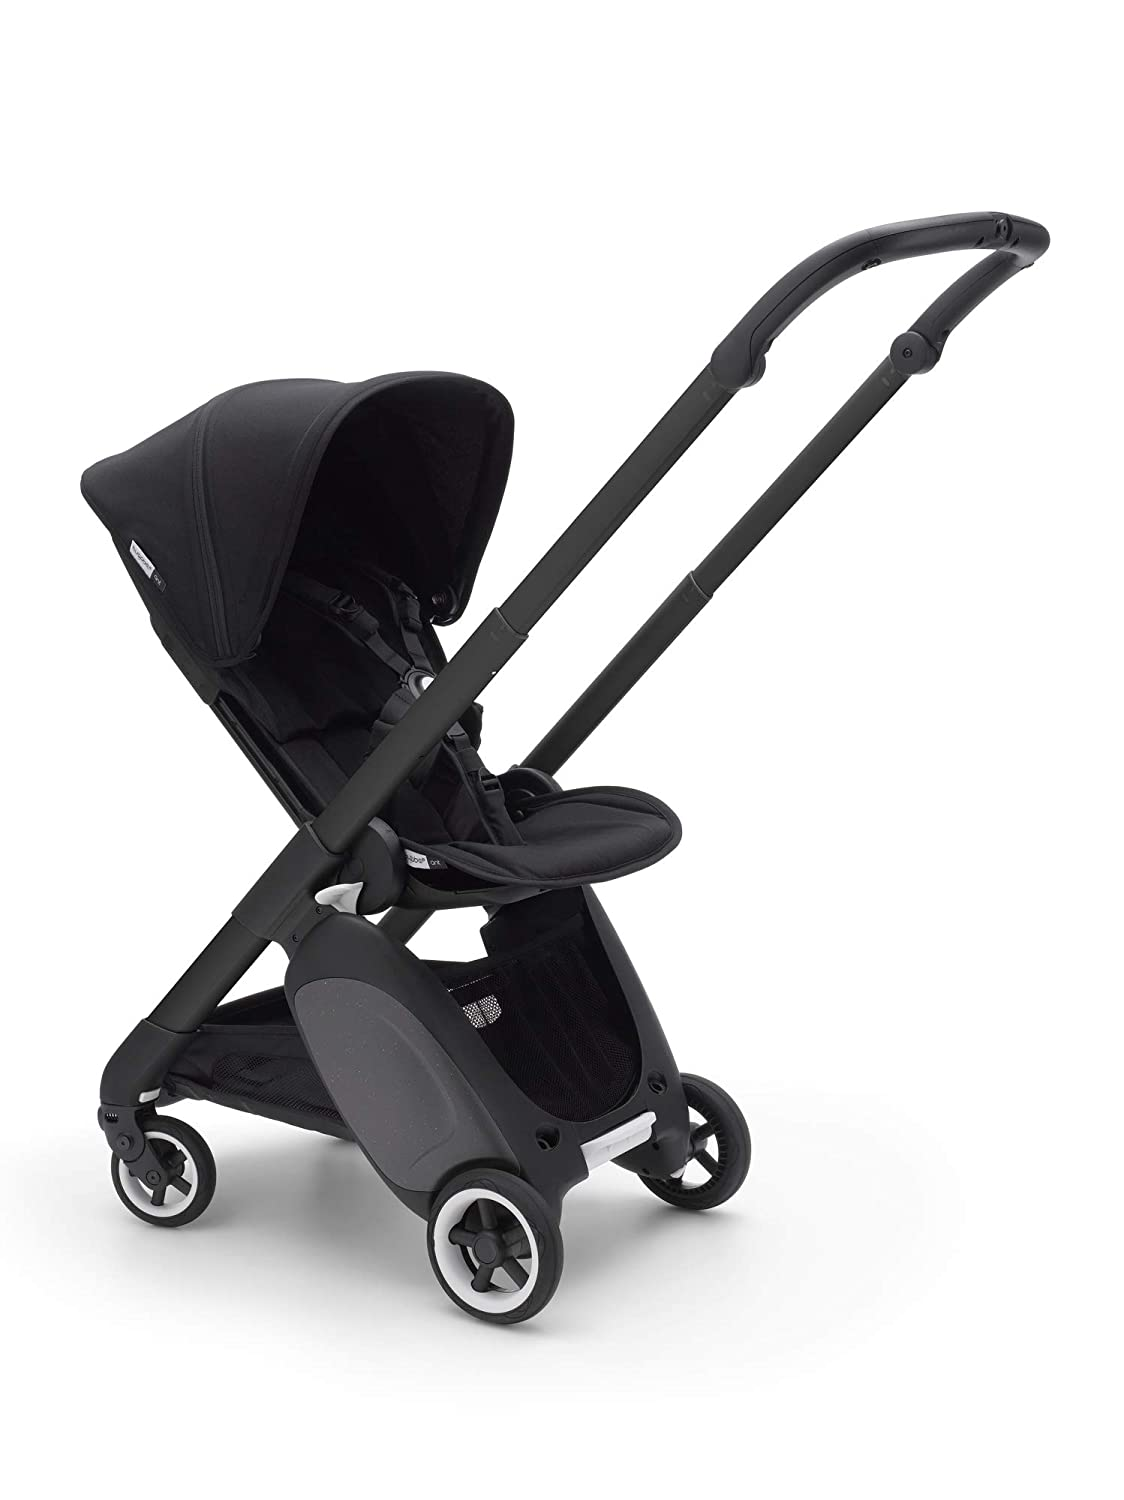 Bugaboo Ant Baby Stroller – Lightweight Stroller – Foldable Stroller – Travel and Compact Storage – Fits in Overhead Compartments – Reversible and Reclinable Travel Stroller Black